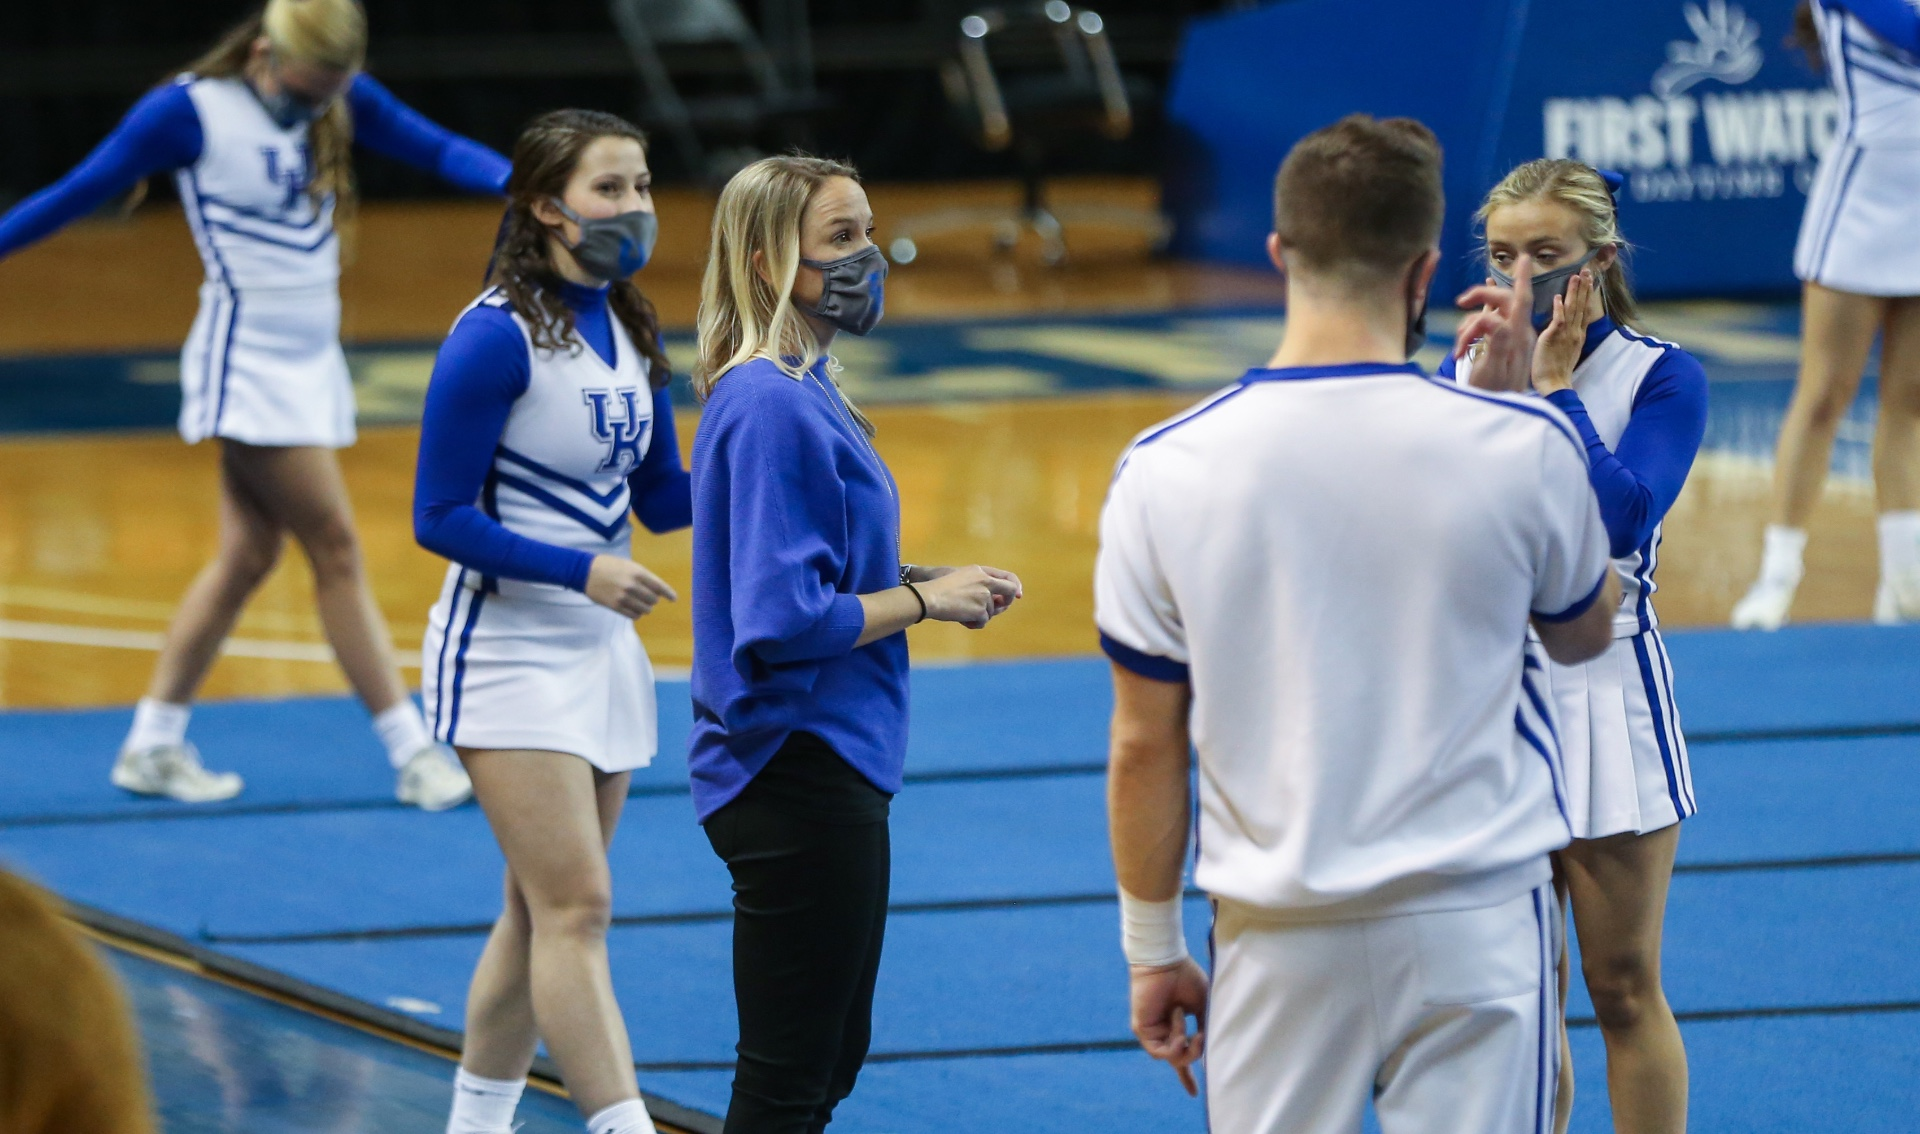 Coach O'Connor stands around her male and female cheerleading student athletes as they practice. All of them are wearing face masks.